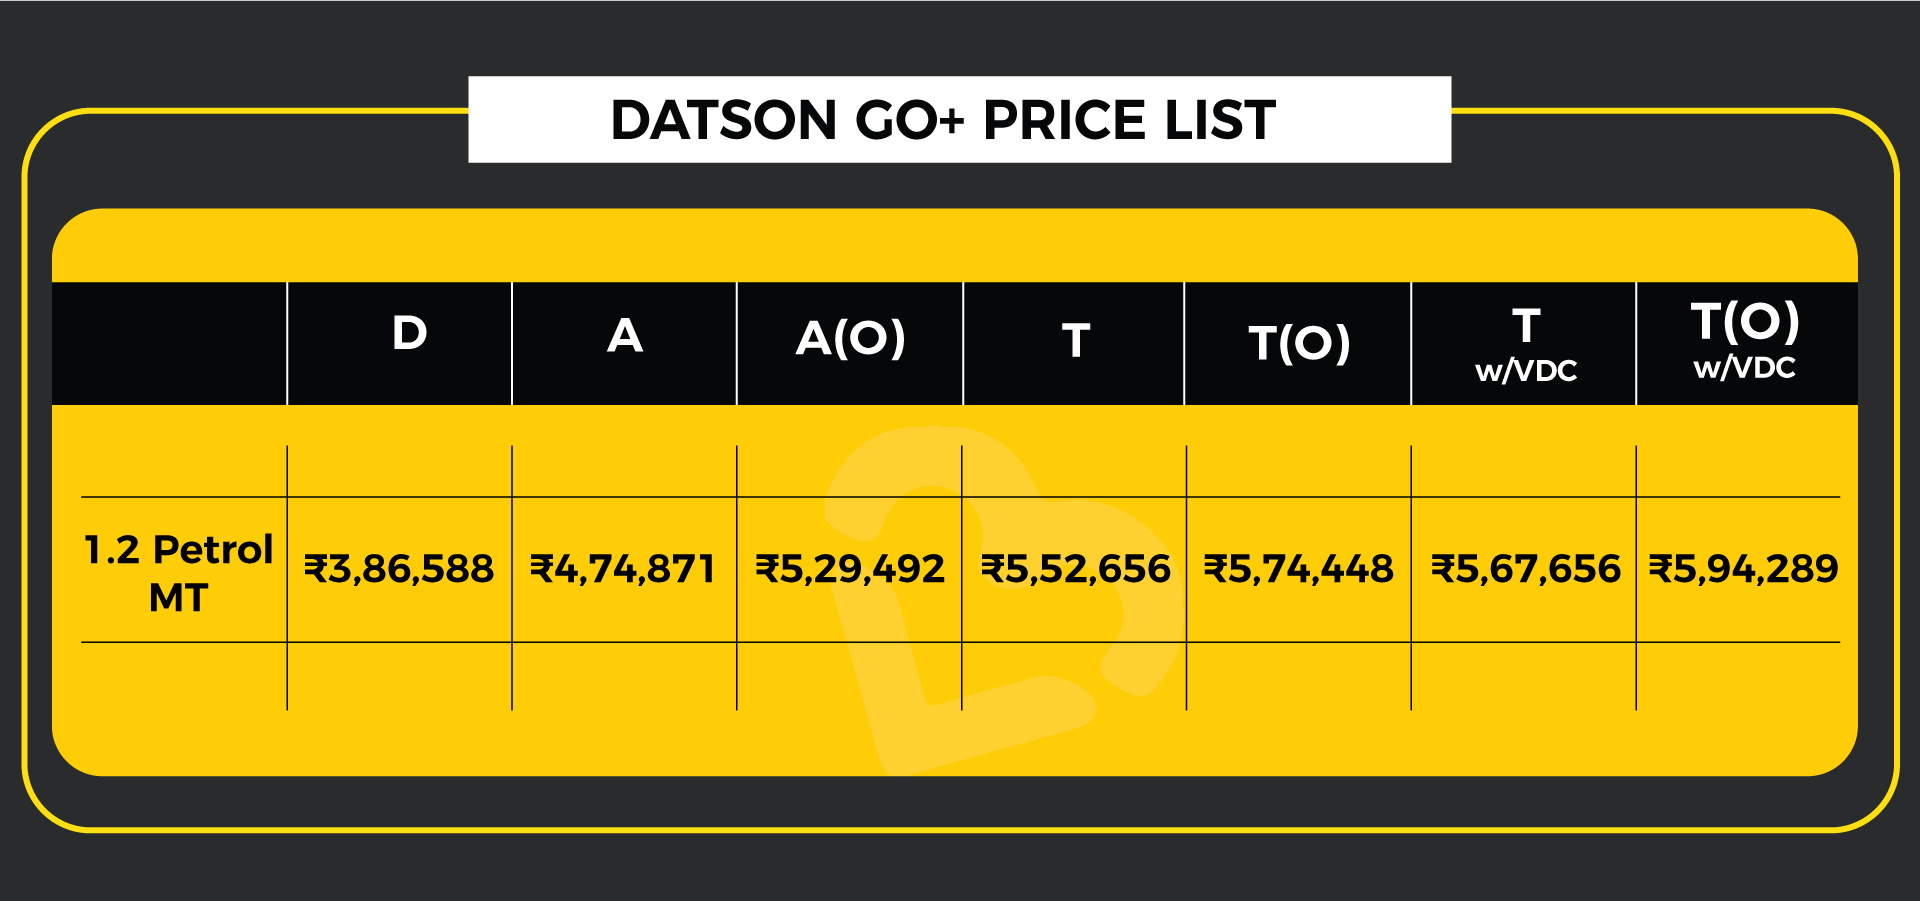 Datsun Go Plus Price list